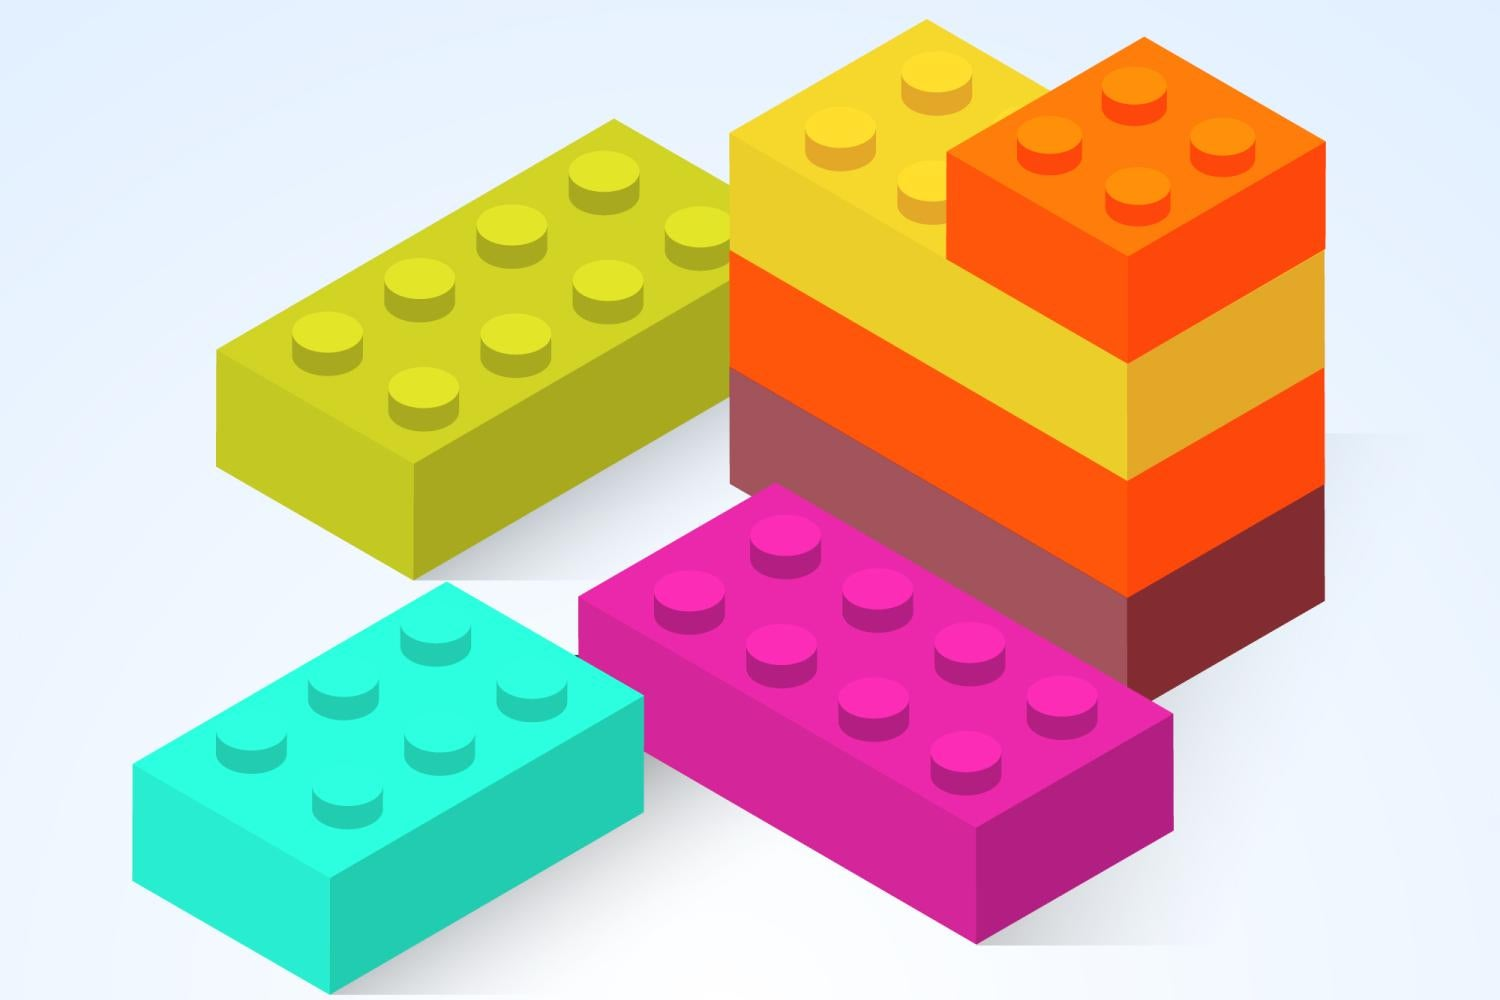 Colorful lego-style blocks